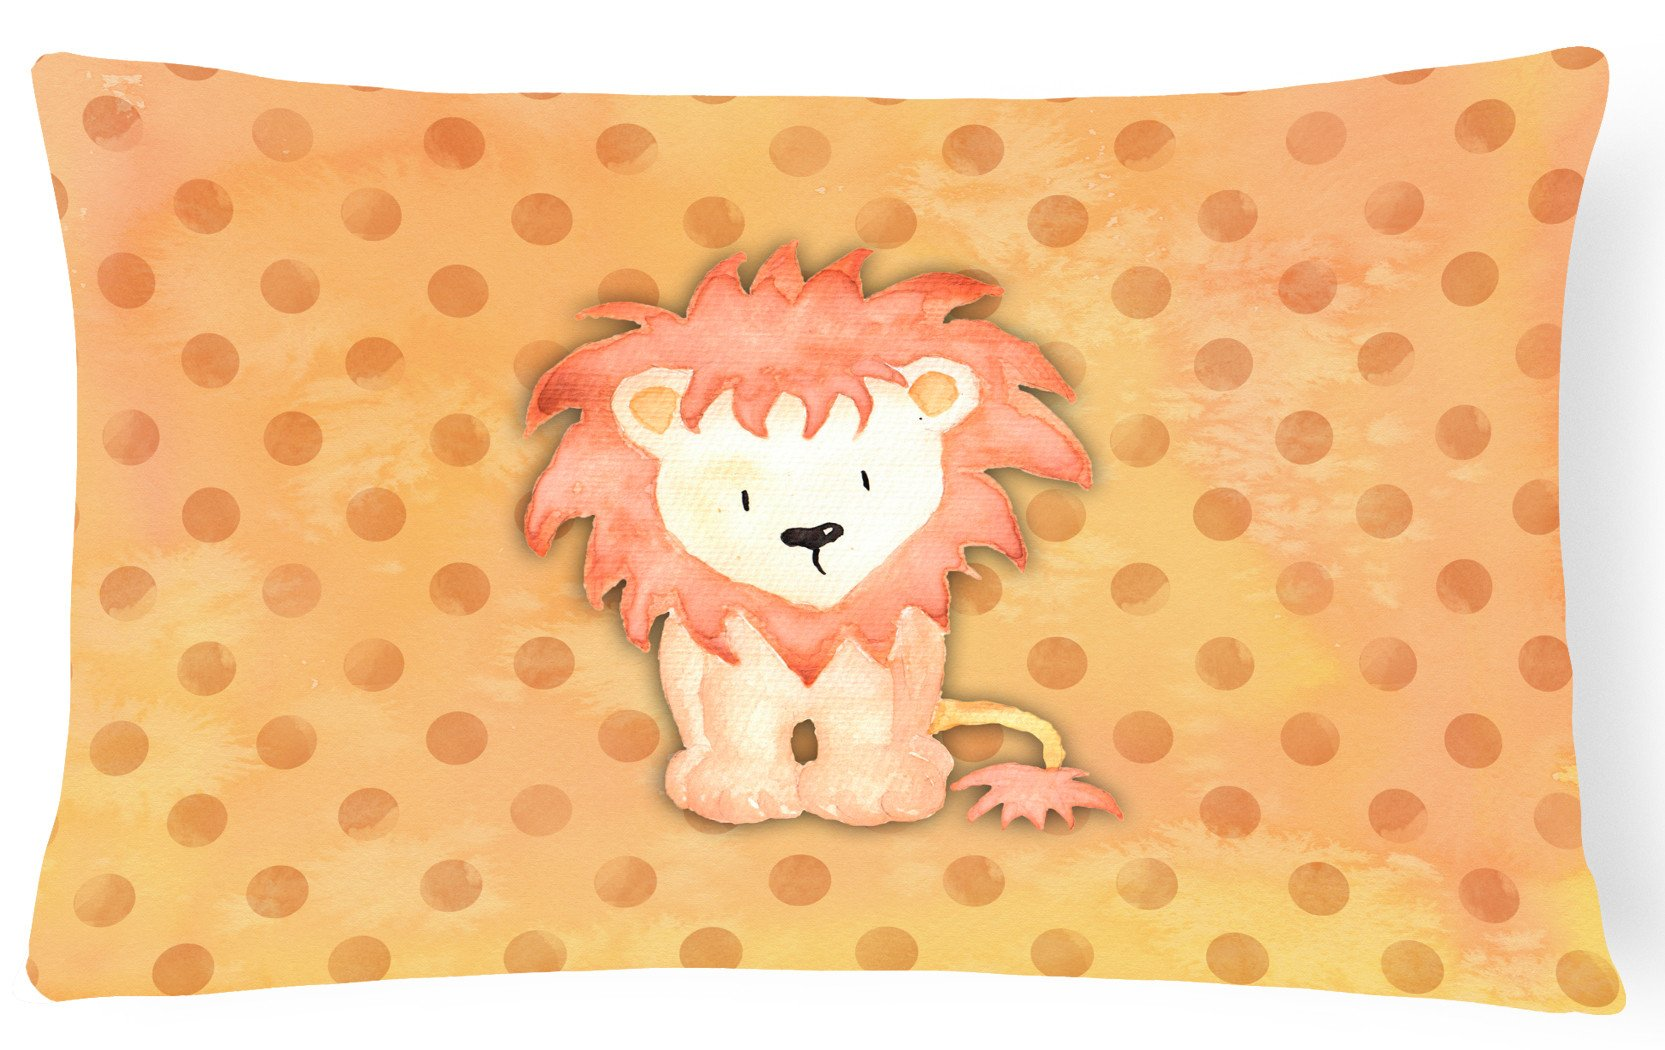 Polkadot Lion Watercolor Canvas Fabric Decorative Pillow BB7374PW1216 by Caroline's Treasures